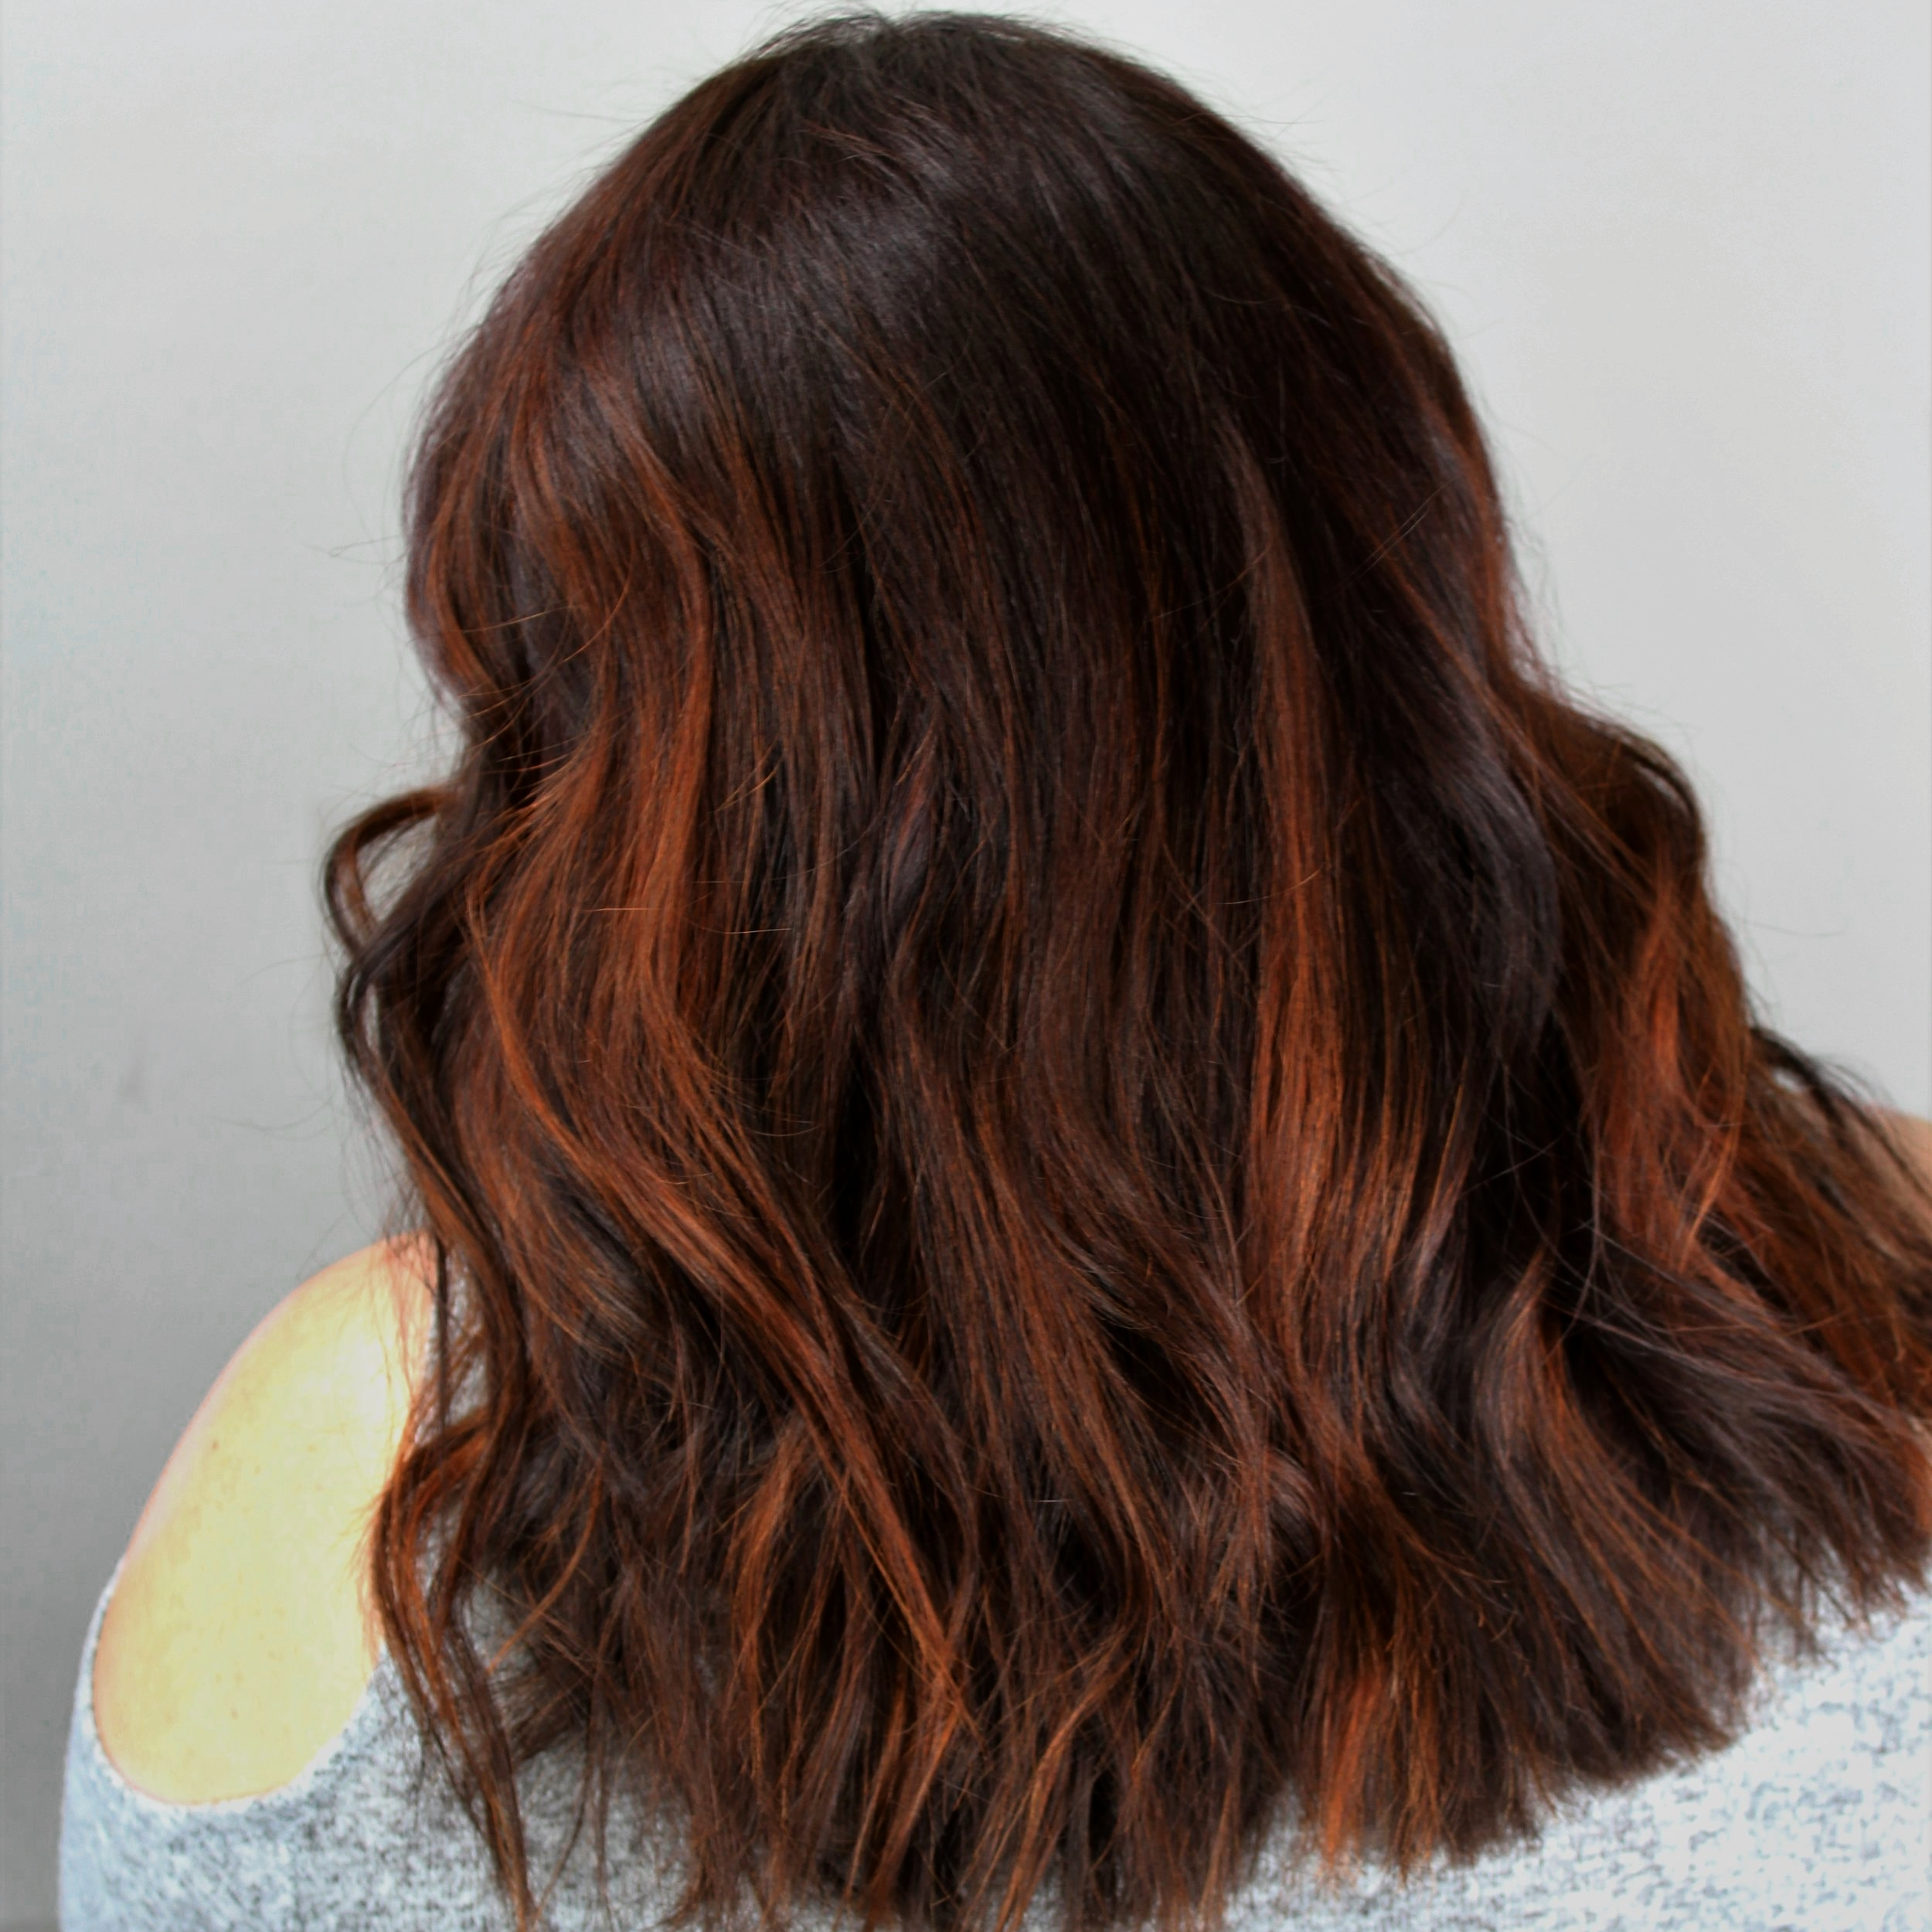 Balayage by Amy Koepke, Salon Amaryllis